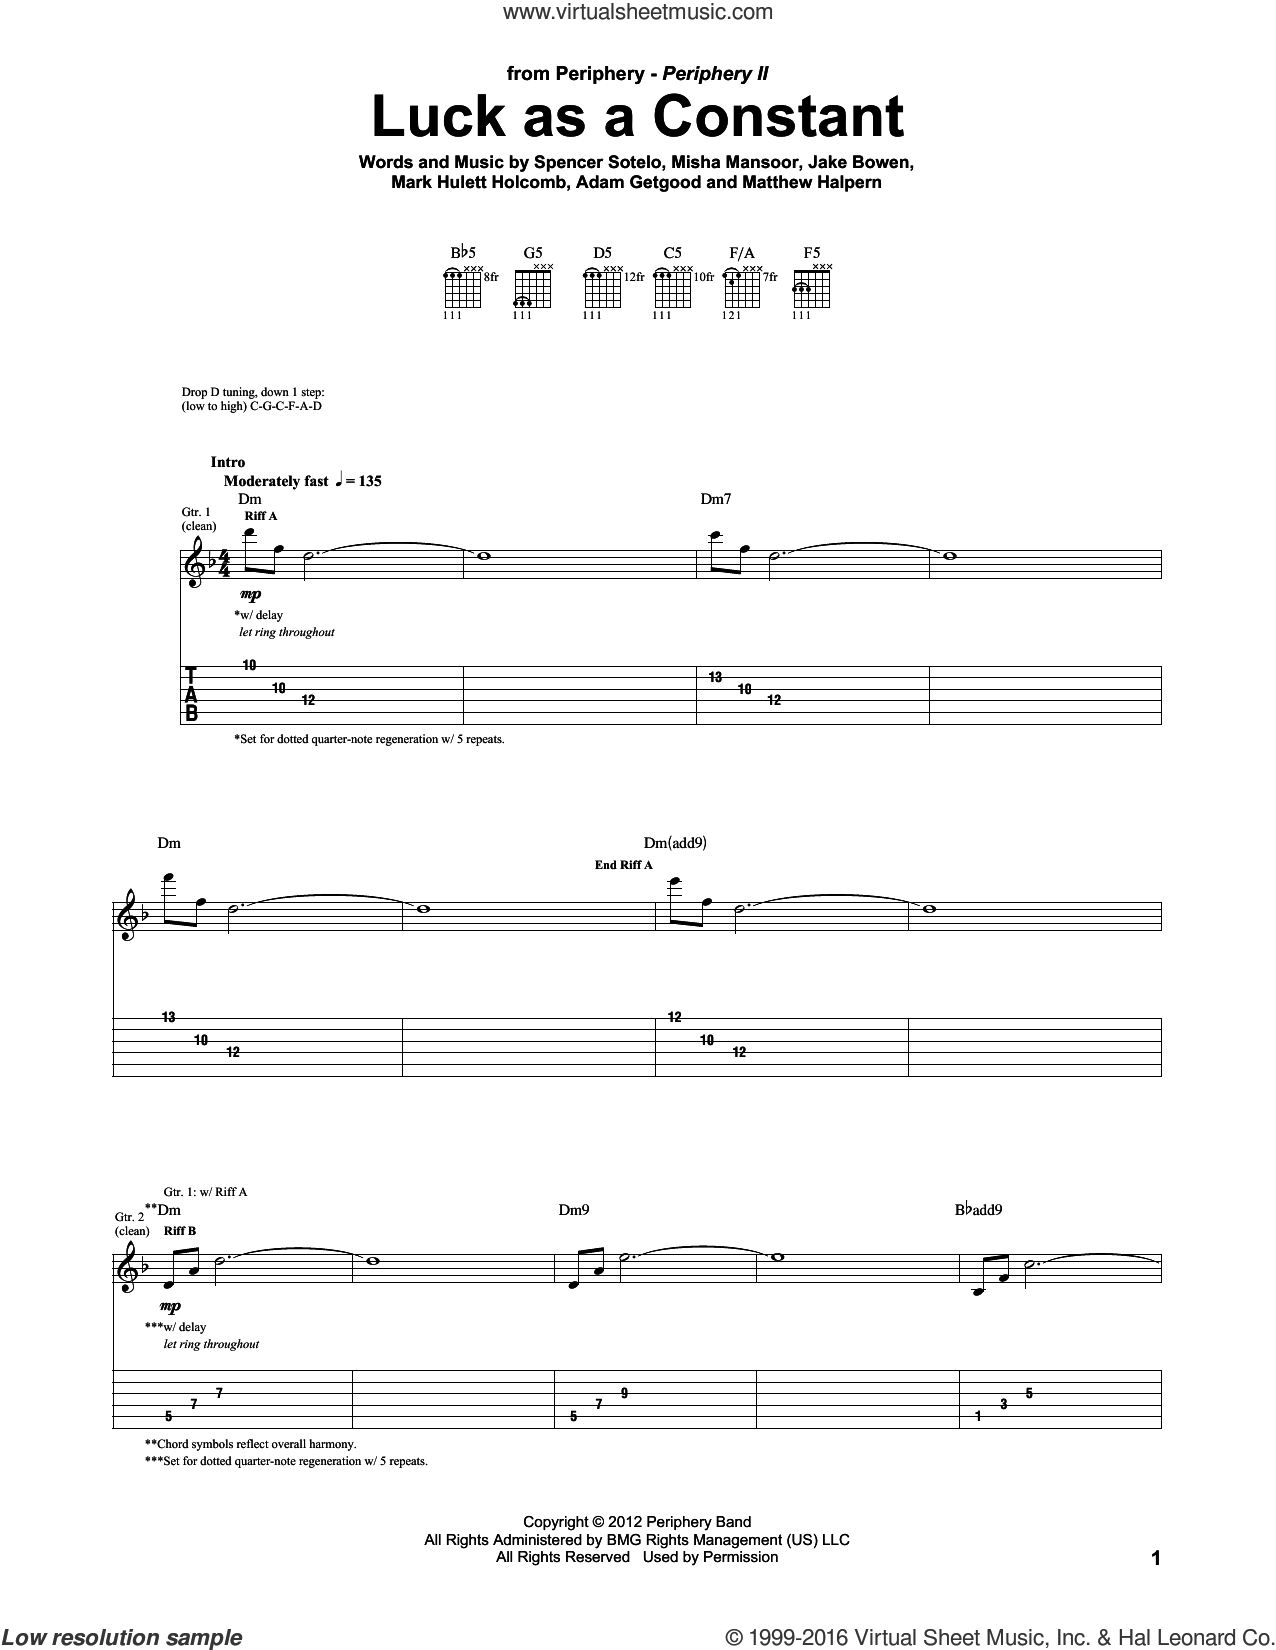 Luck As A Constant sheet music for guitar (tablature) by Spencer Sotelo. Score Image Preview.